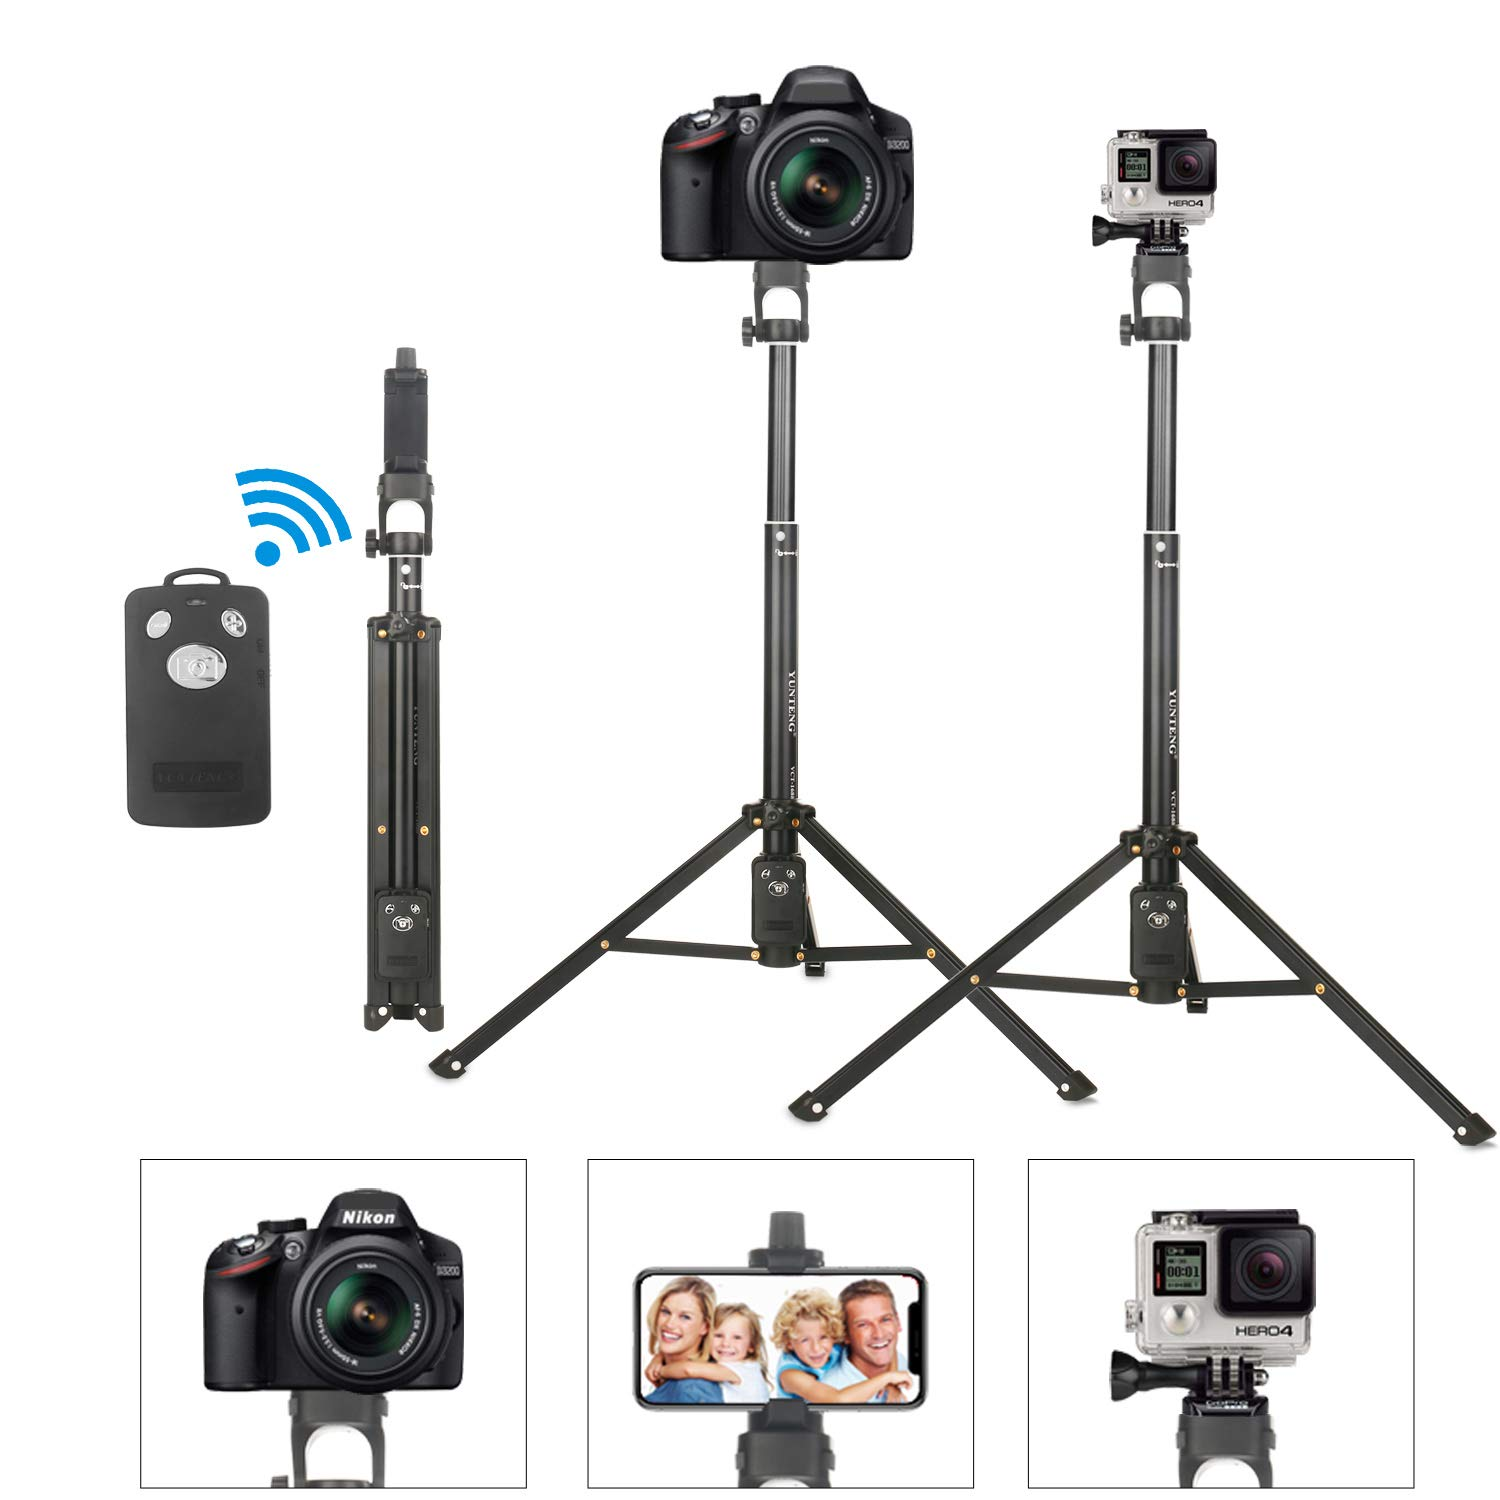 Selfie Stick Tripod, Extendable Camera Tripod,Phone Tripod Included Bluetooth Wireless Remote for Apple,Android Devices,Compatible with iPhone X/8/8 Plus/Galaxy Note 9/S9/Google,Gopro Adapter.